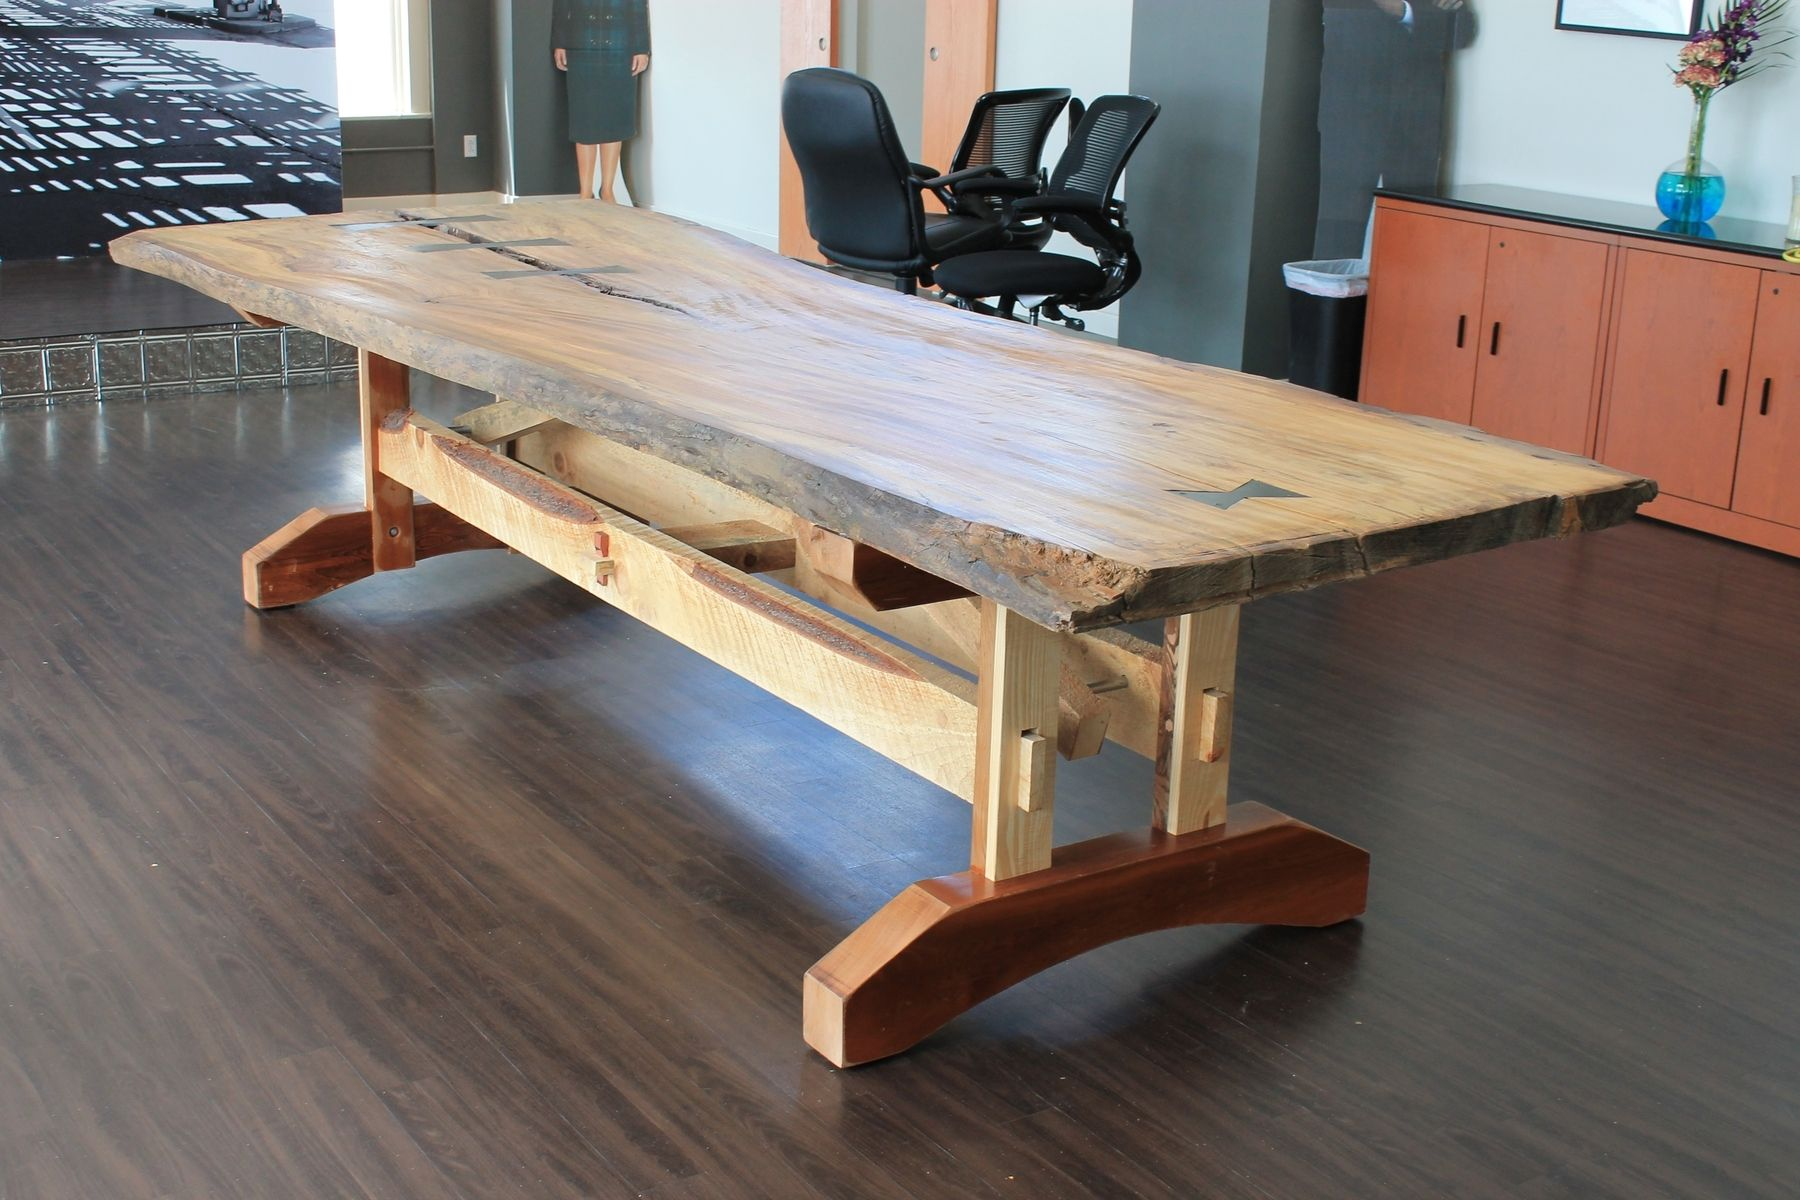 hand crafted reclaimed live edge elm table by crafty naturals. Black Bedroom Furniture Sets. Home Design Ideas